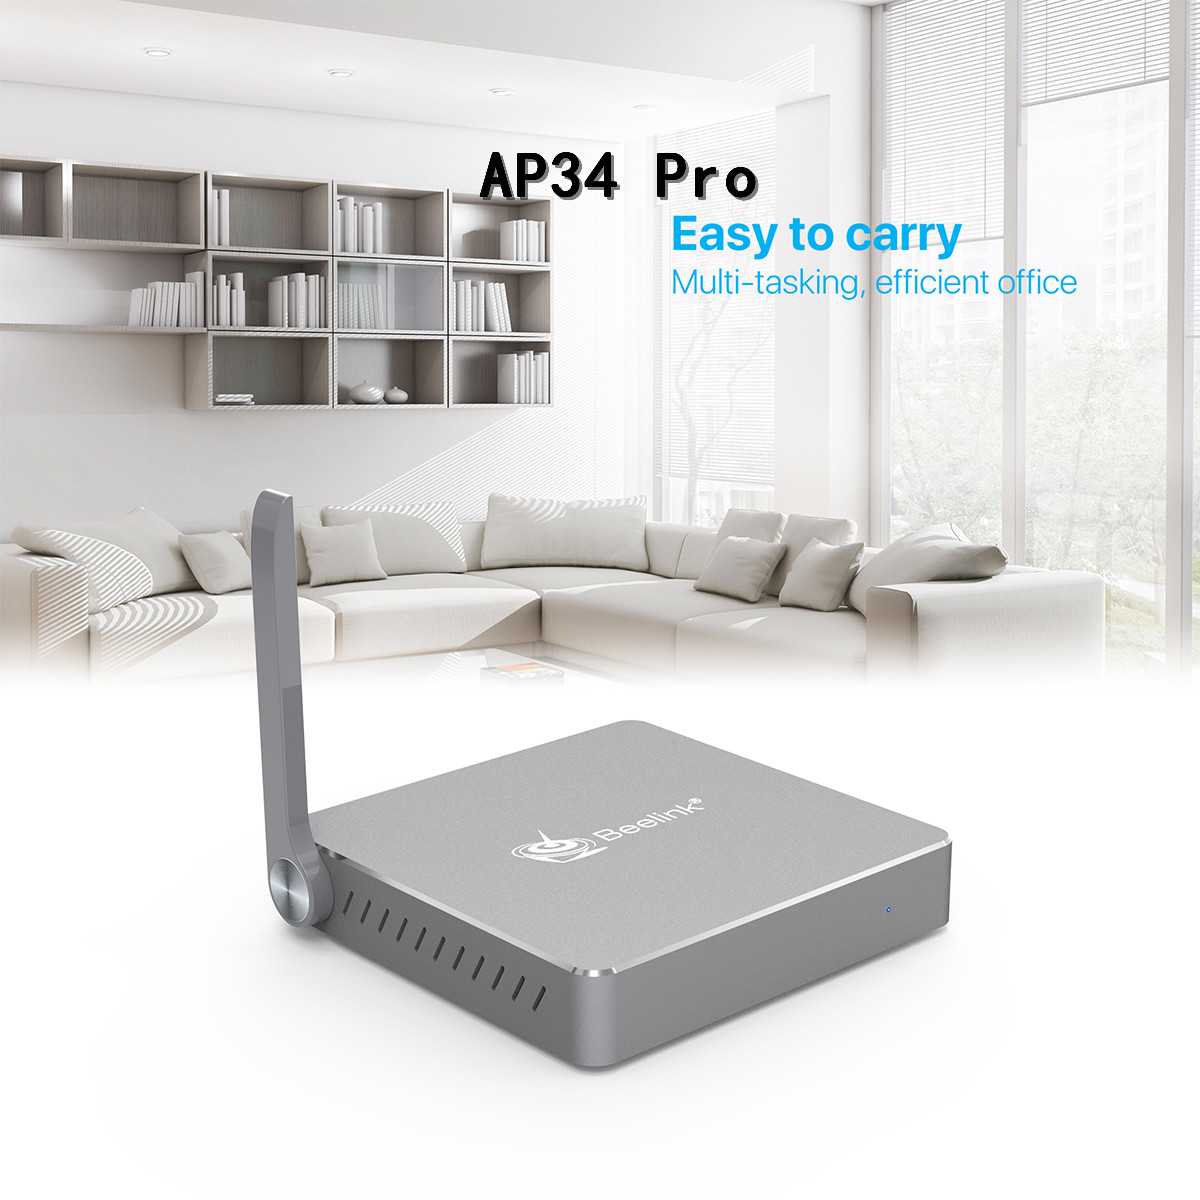 Smart Beelink AP34 Pro Gemini X55 X45 S2 Android TV Box Mini PC Windows 10 Bluetooth Set Top Boxes Media Player Vs Gt1 Ultimate купить в Москве 2019